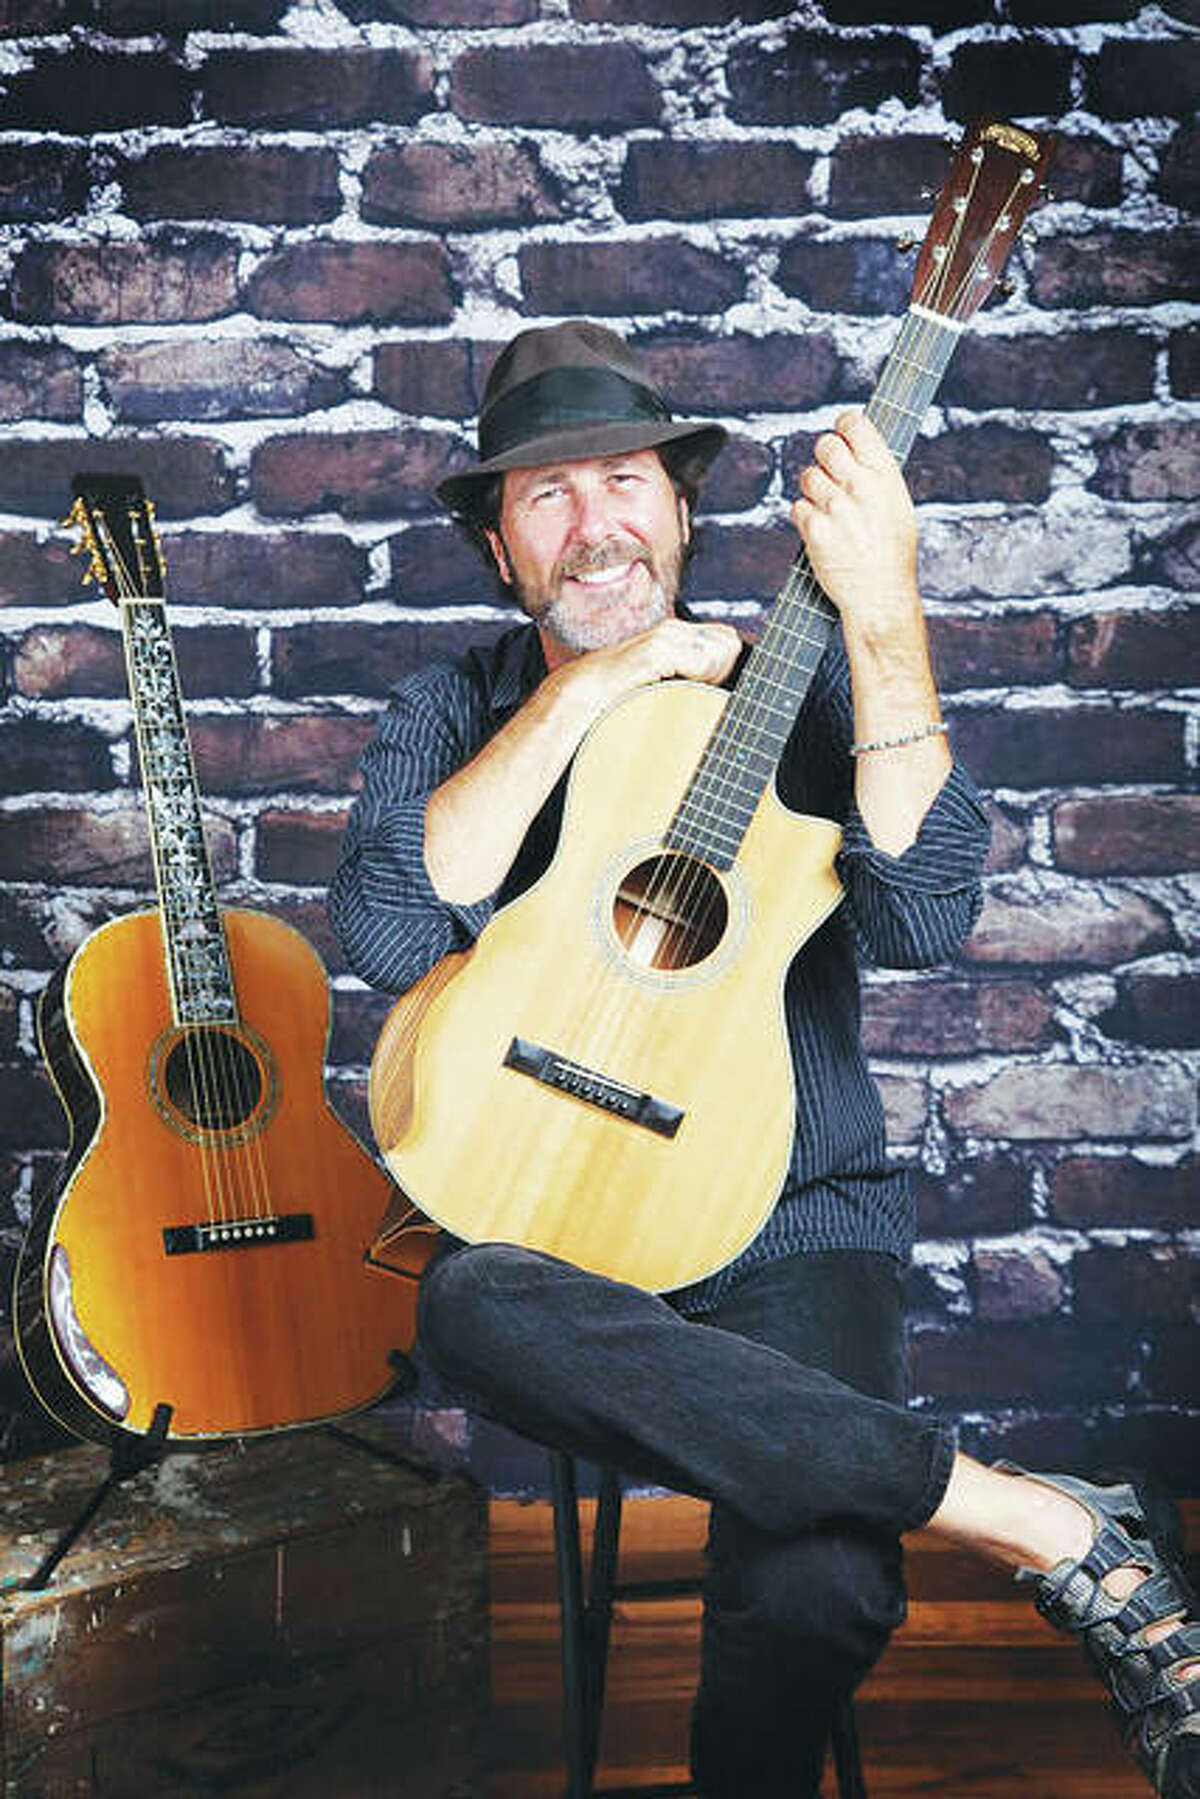 Barry Cloyd will perform on Saturday, May 19, in the new gazebo behind Green Tree Inn.